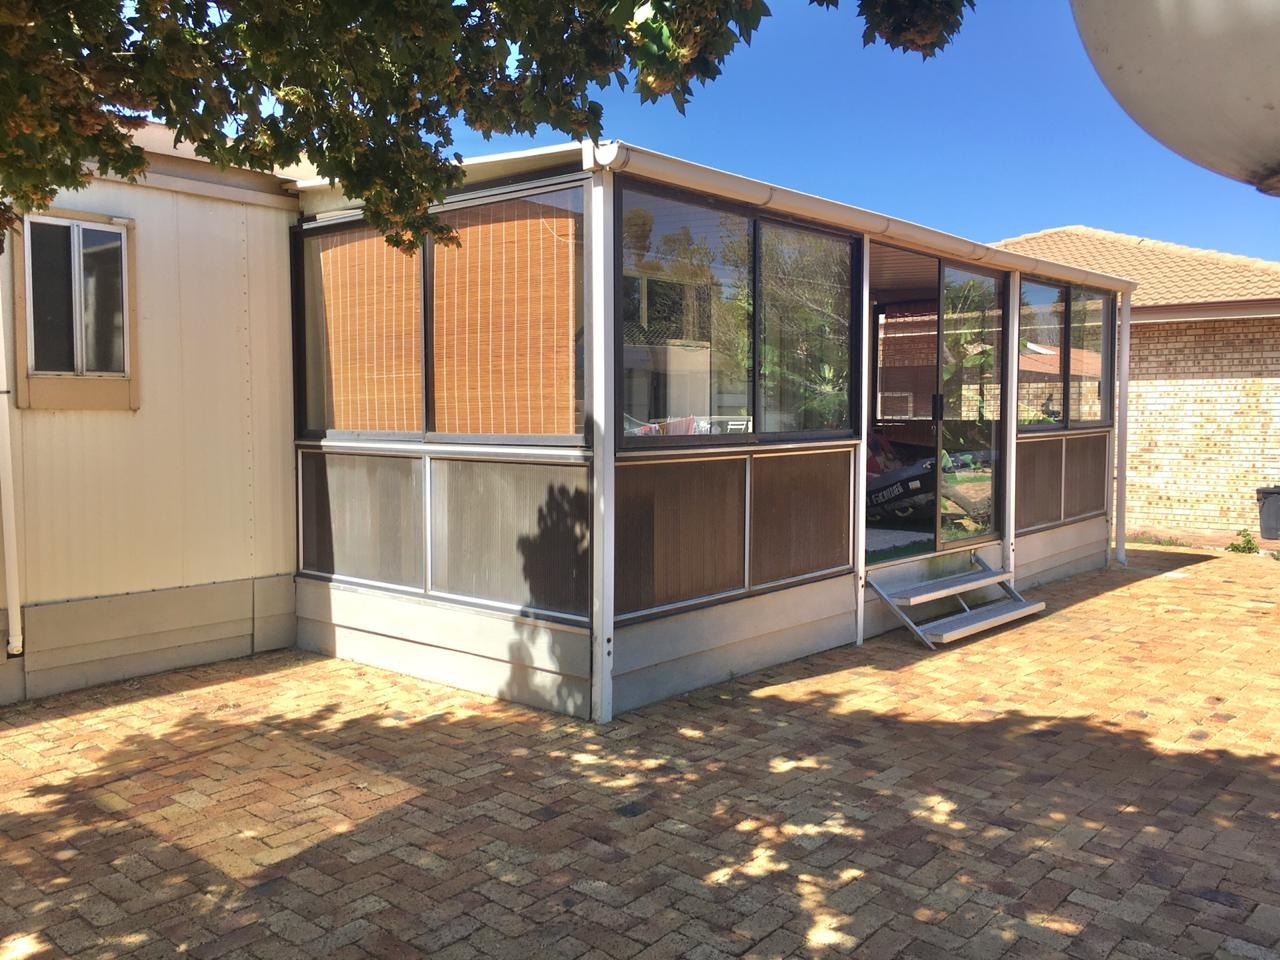 2 Bedroom House For Sale in Vaal Marina